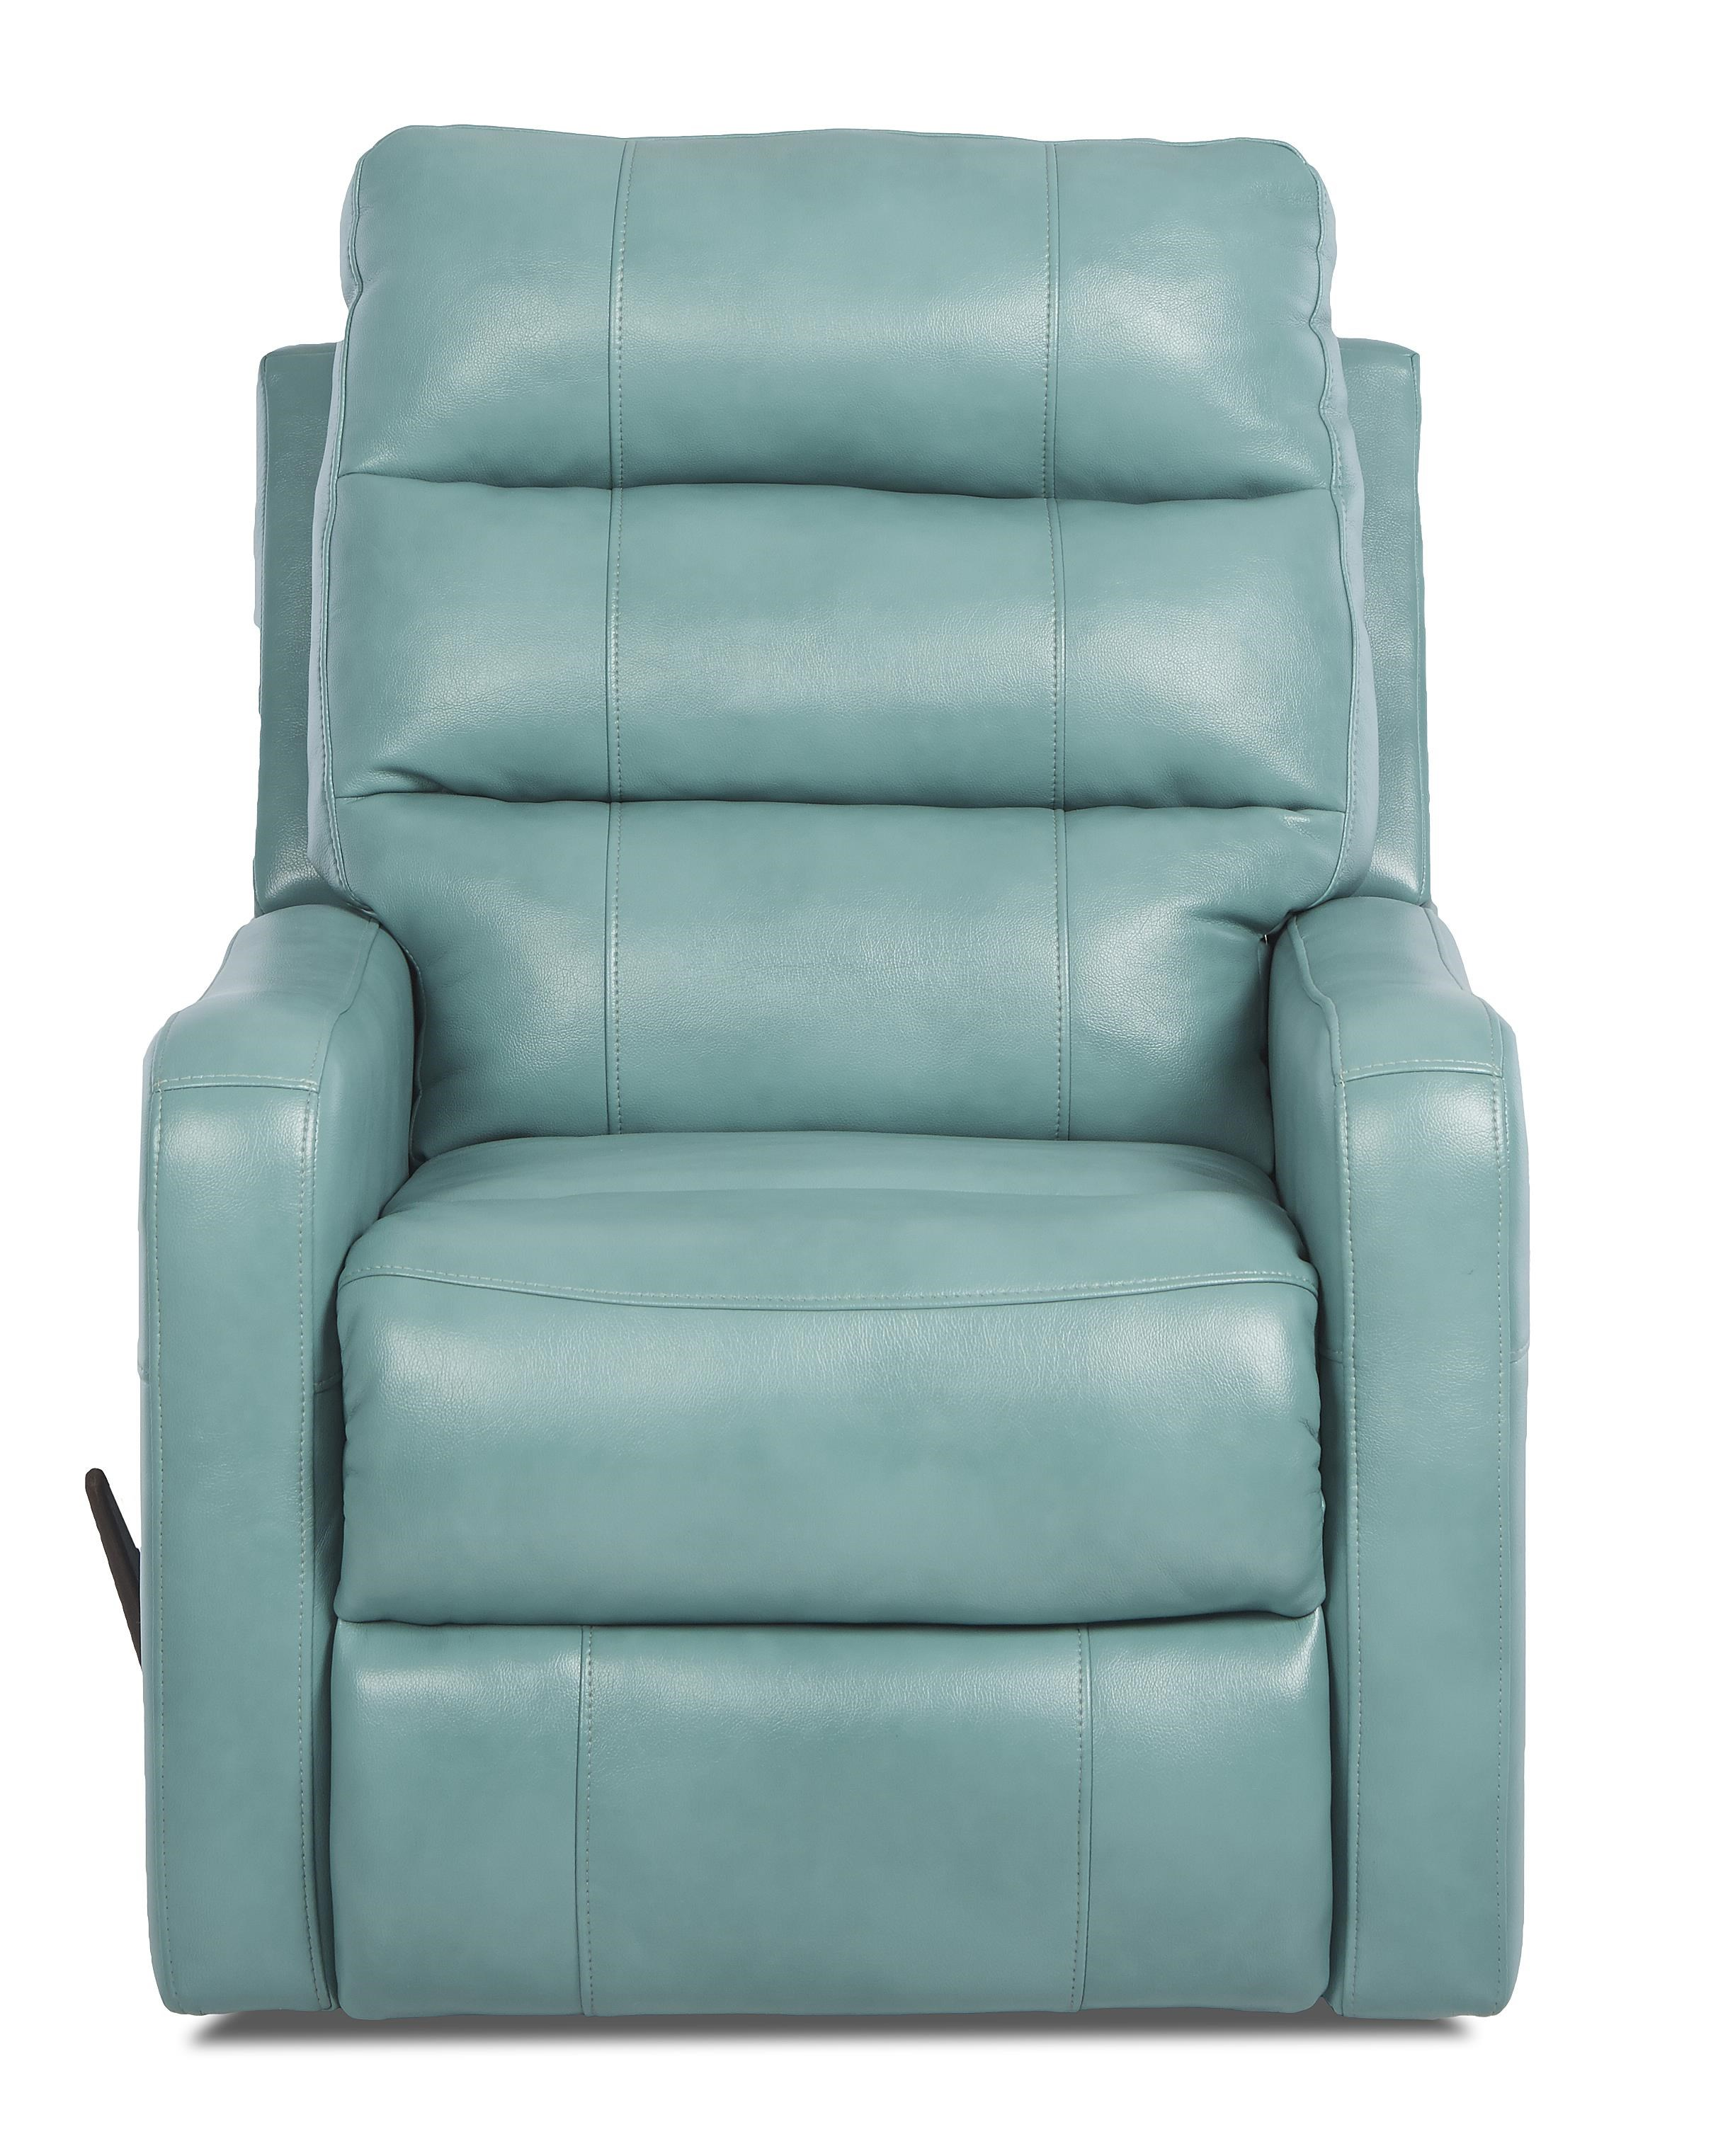 Klaussner StrikerContemporary Power Rocking Reclining Chair